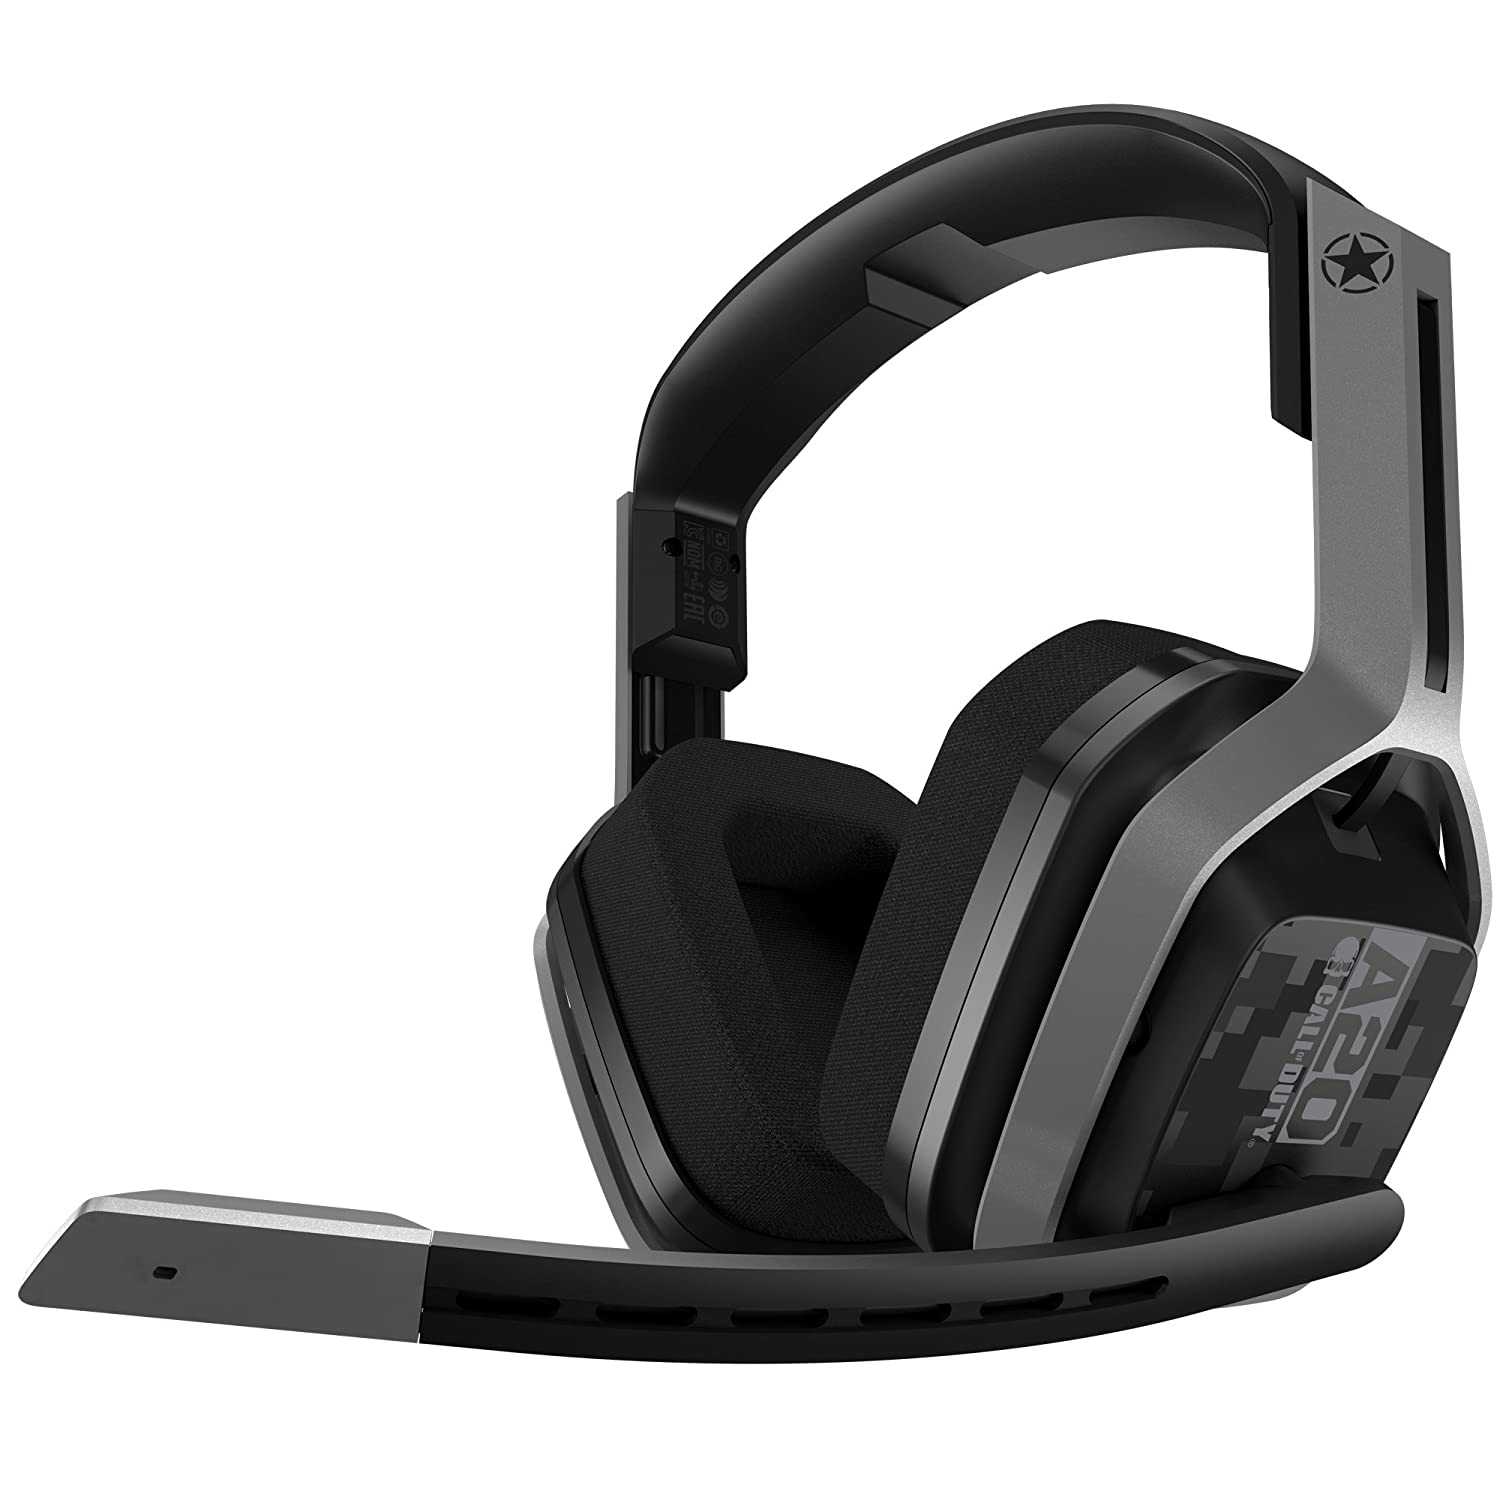 ASTRO Gaming A20 - Auriculares con micrófono inalámbricos Call of Duty Edition, compatibles con Xbox One, PC, Mac, Plata/Negro: Amazon.es: Electrónica